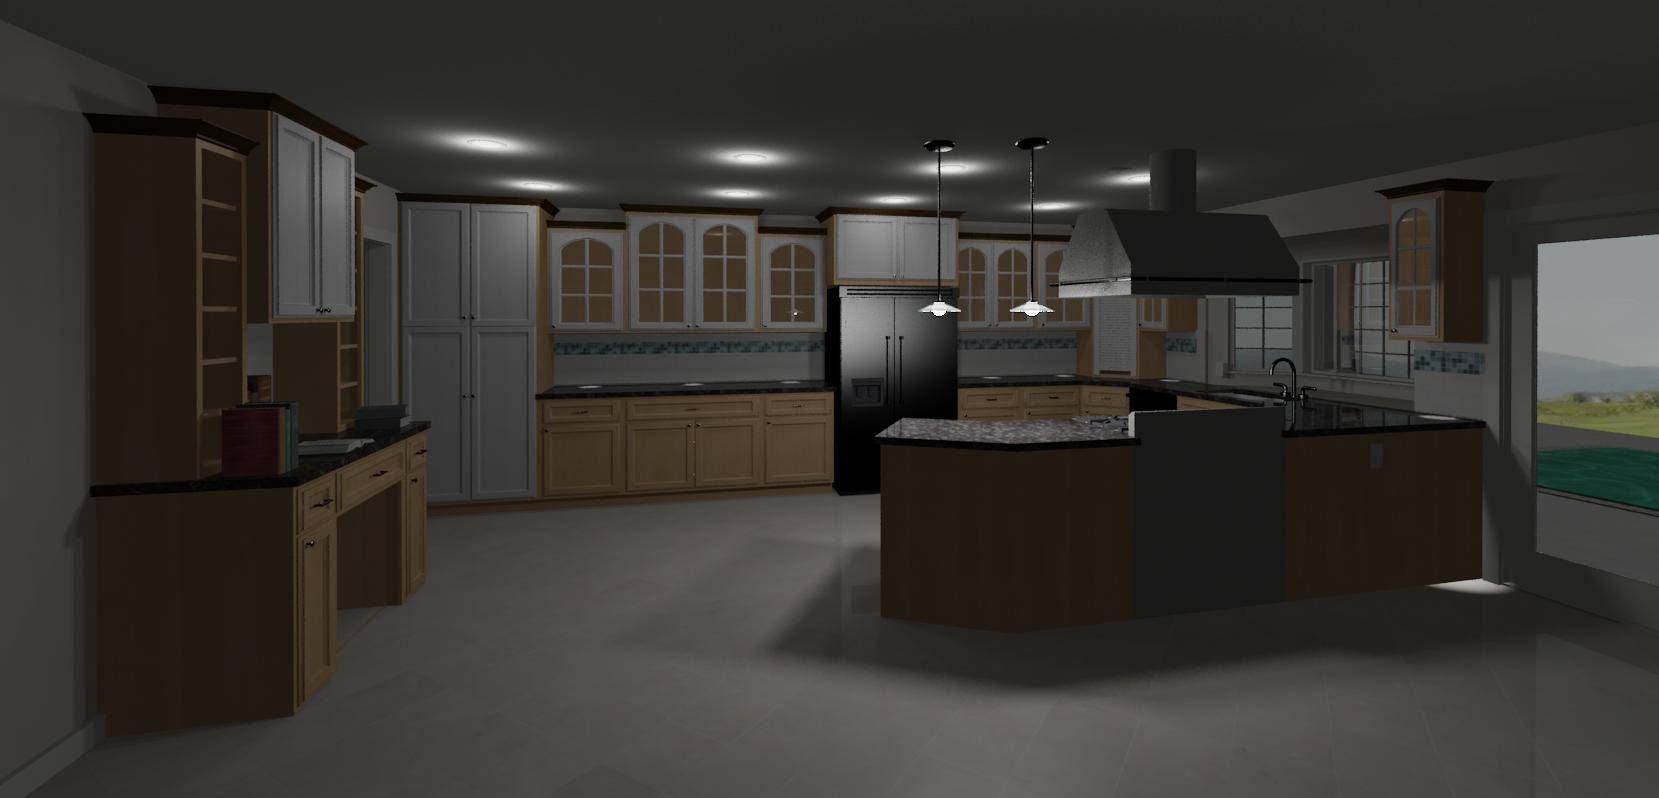 Post Up Your Renderings!-kitchen-render-big-one-.jpg